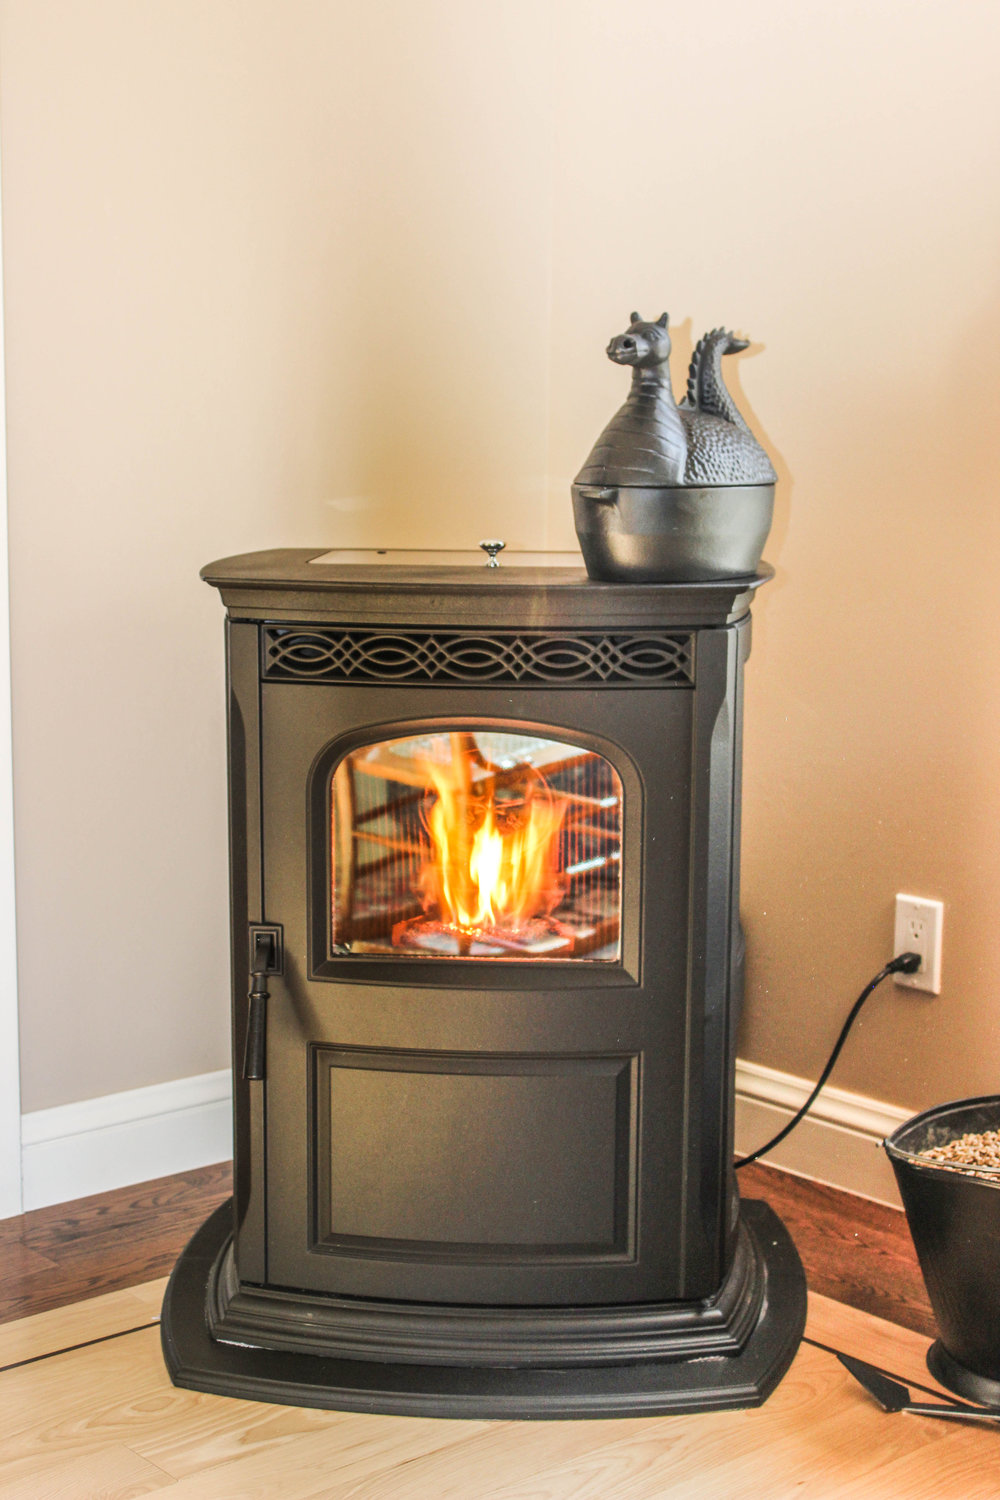 stoves  Stoves are free-standing appliances on legs or pedestals. Stoves are both efficient and offer a variety of finishes.They are great for heating cold basements!